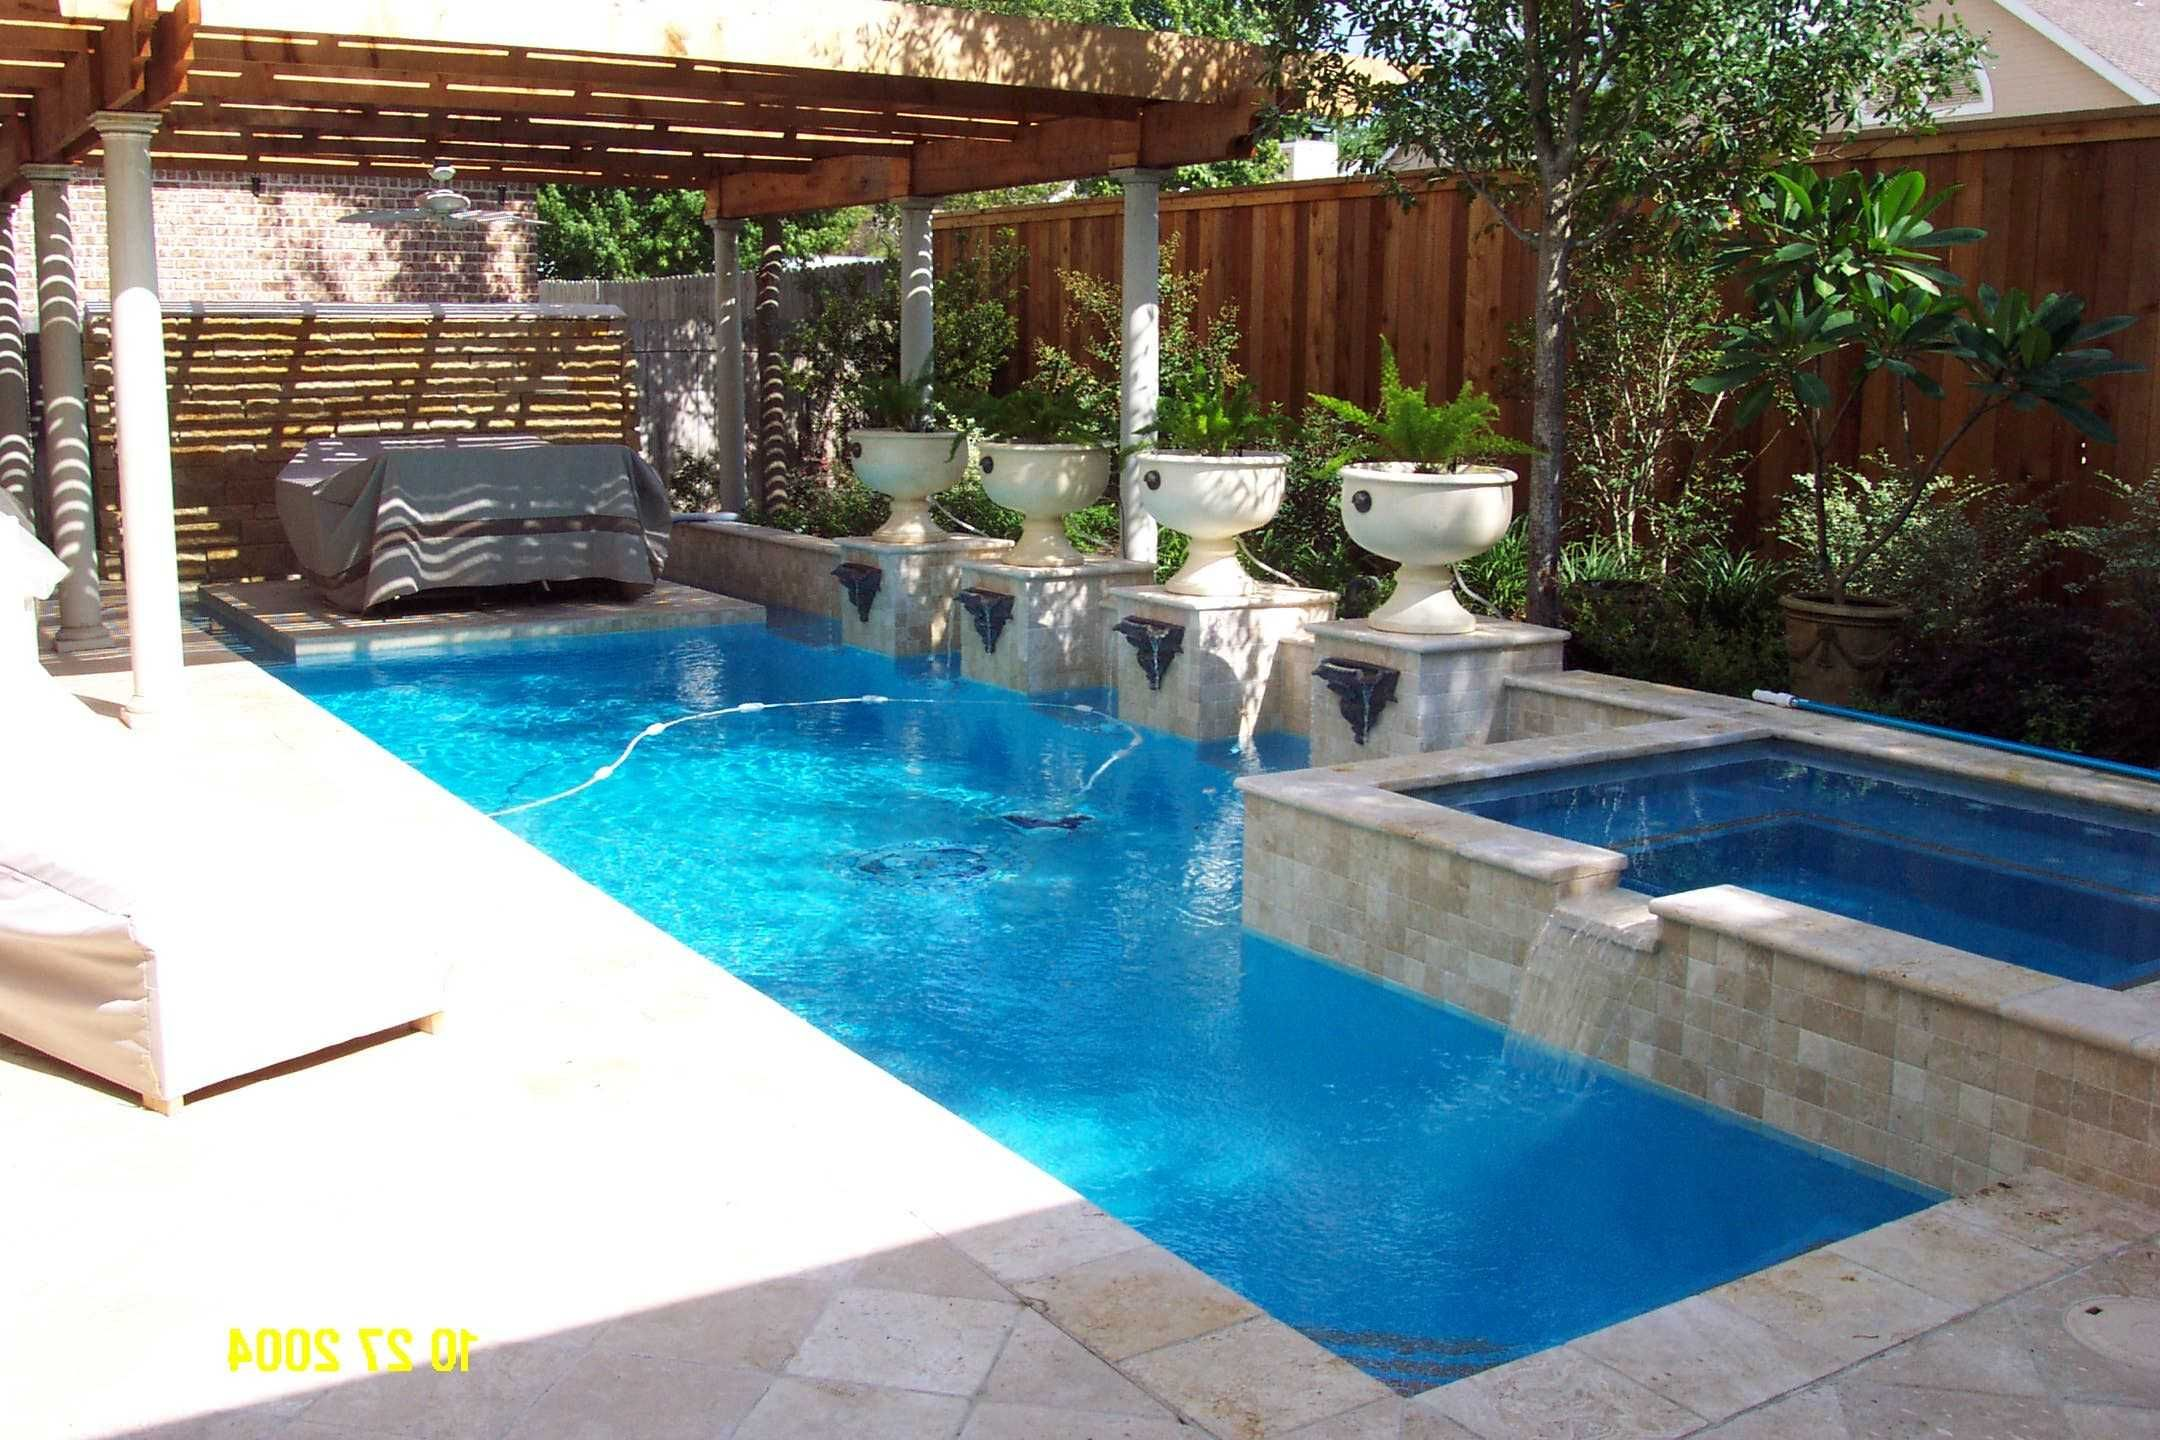 Cheap Way To Build Your Own Swimming Pool Diy Swimming Pool Building A Swimming Pool Cheap Pool